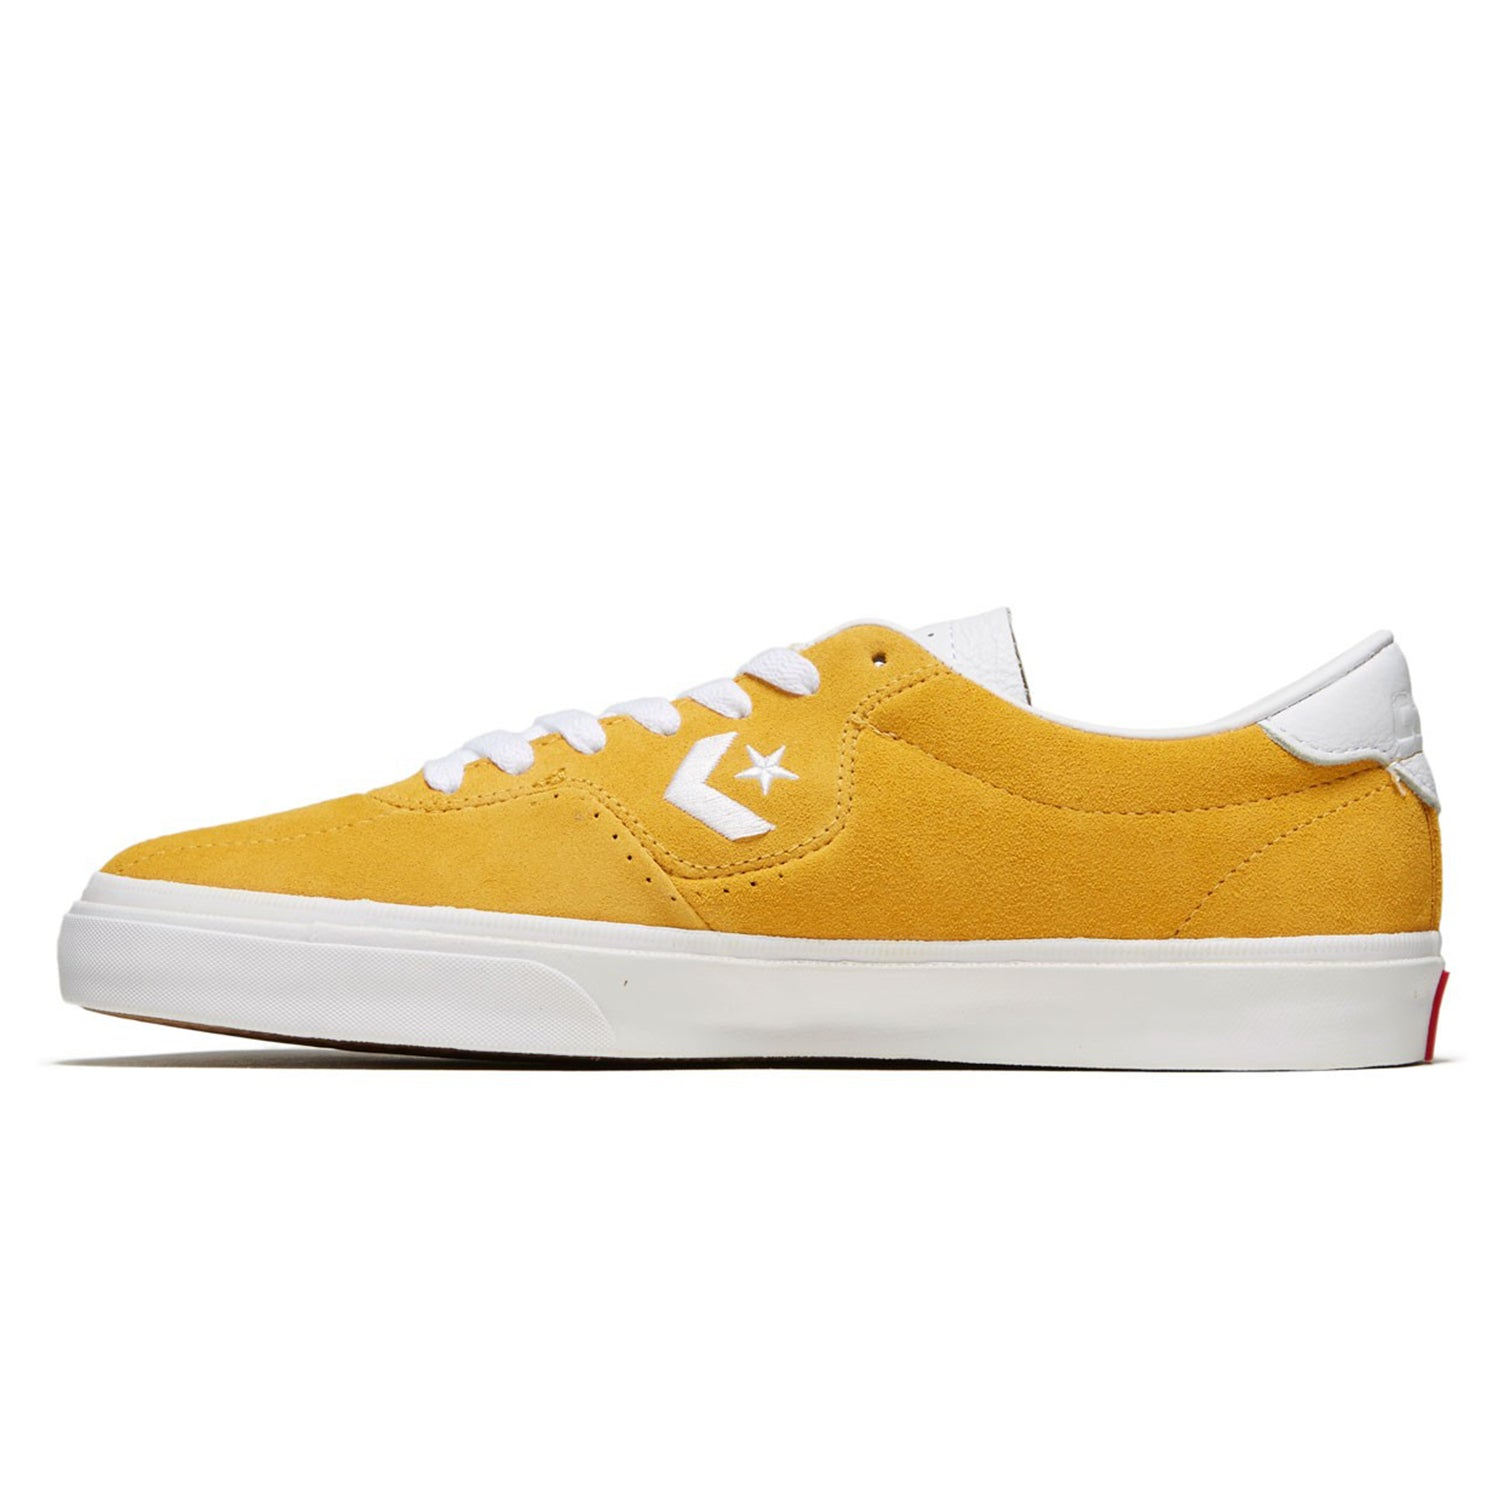 Converse CONS Louie Lopez Pro OX Sunflower Gold (Light Yellow)